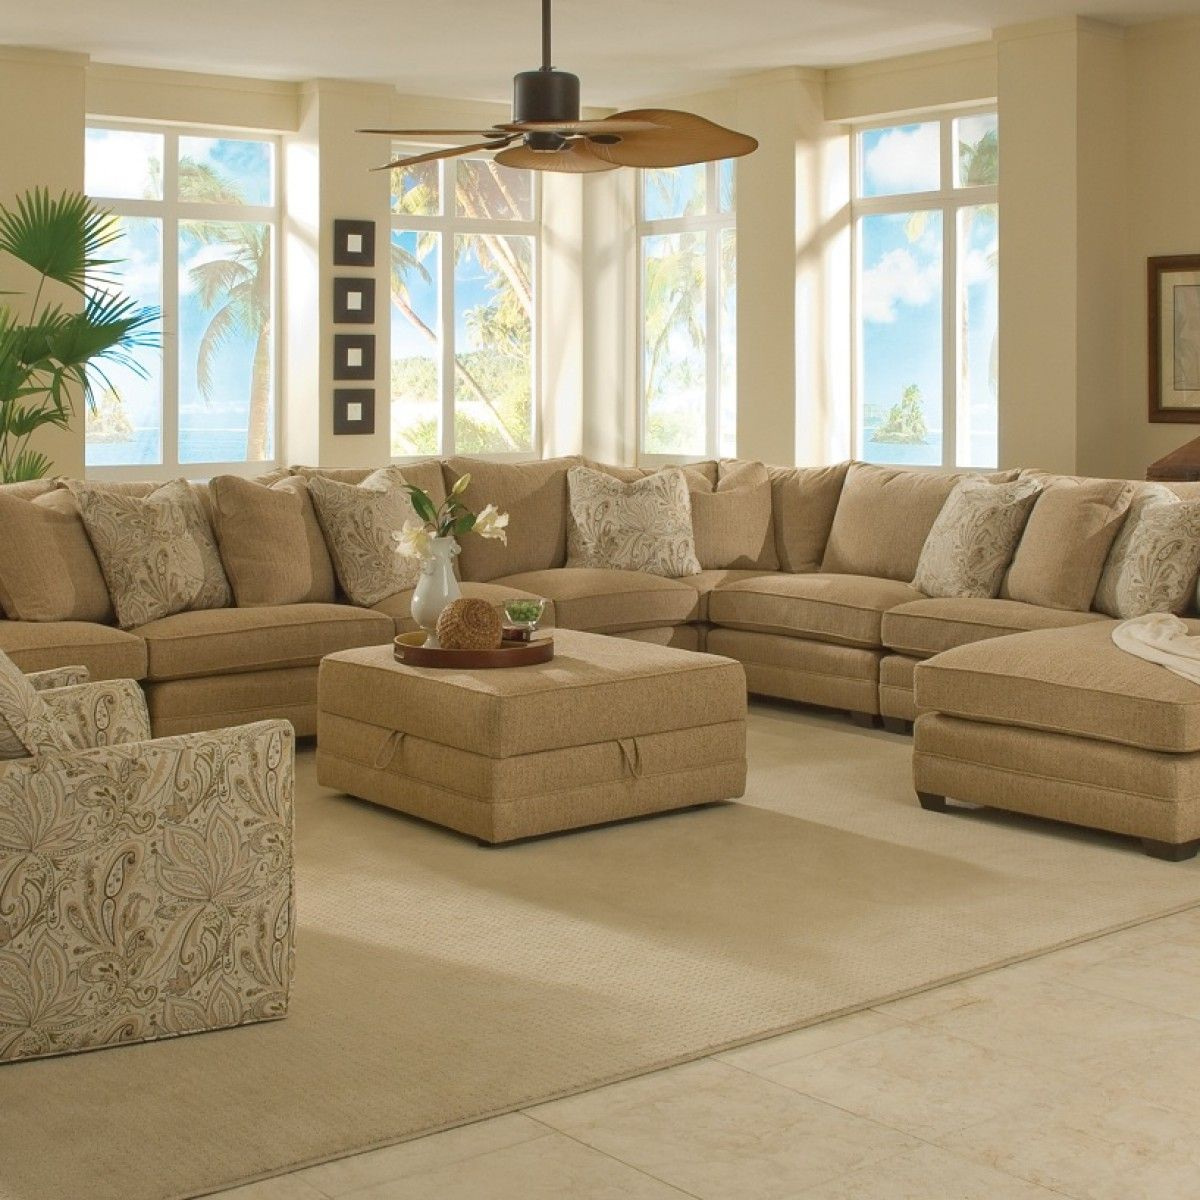 Magnificent large sectional sofas family room for Pinterest living room furniture